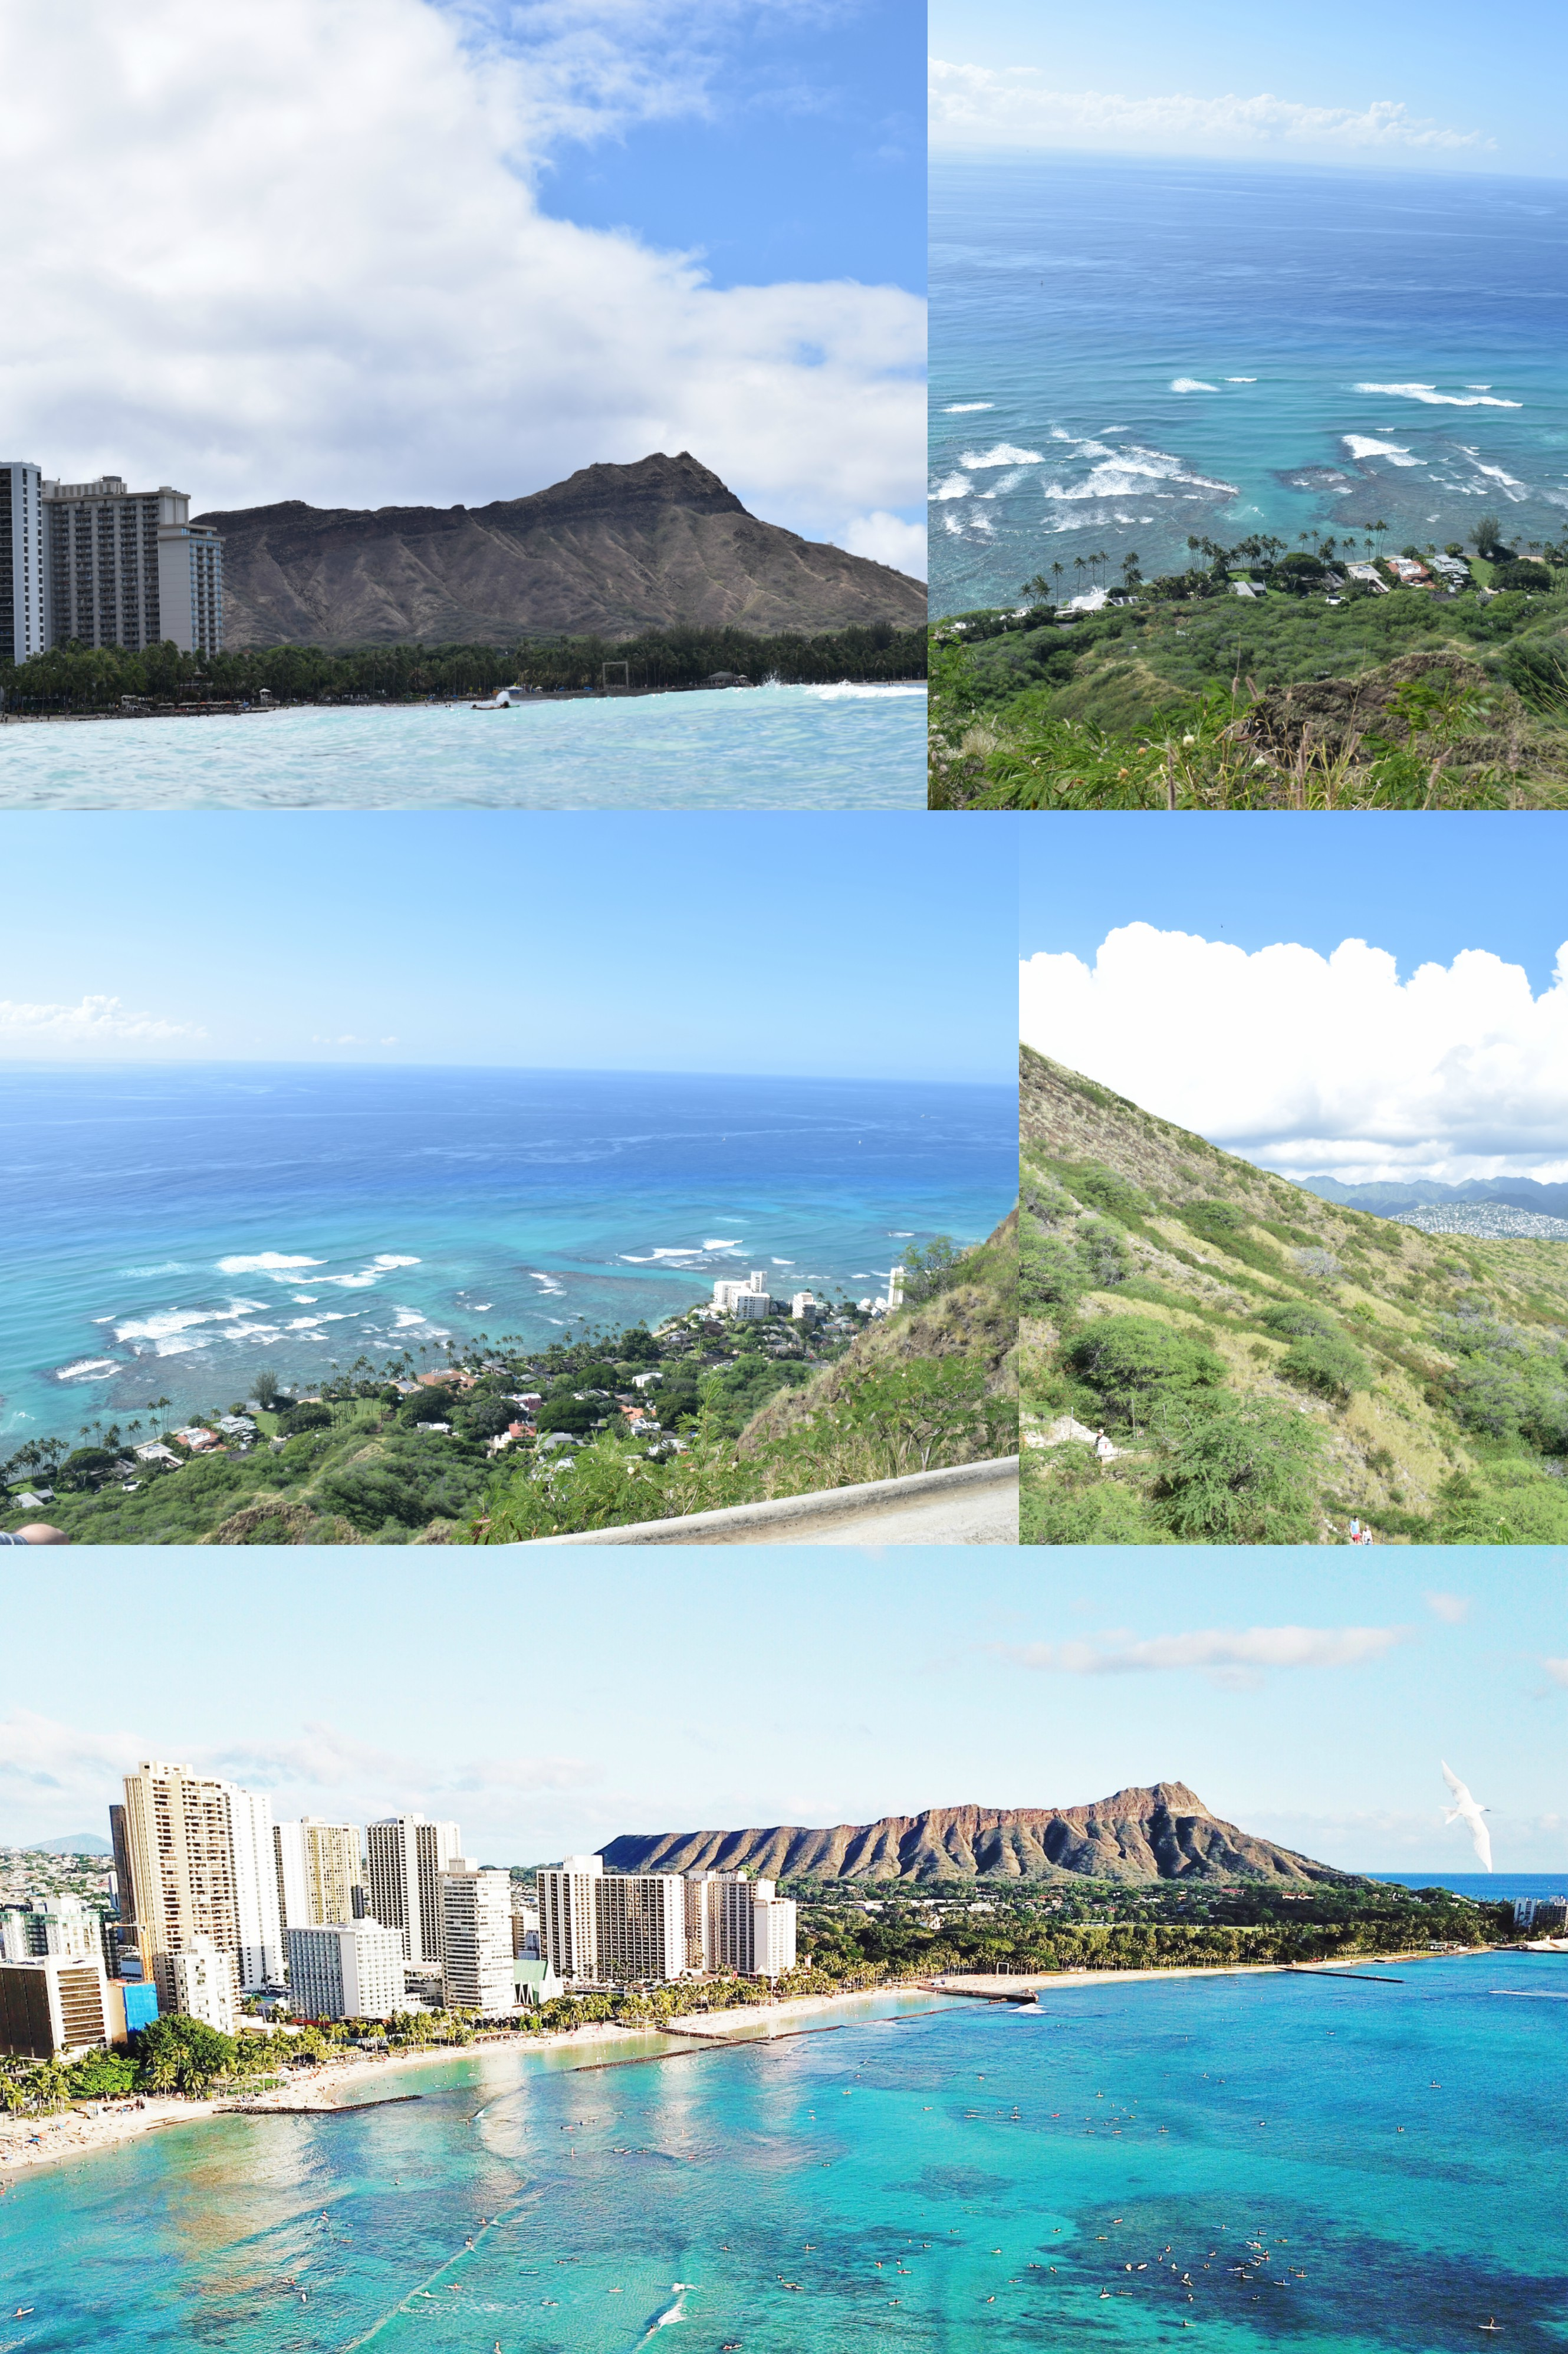 Diamond Head Crater Hike - - The Instagram Guide To Honolulu - Instagram Worthy Spots Honolulu - Oahu Guide For Instagram - Best Places To Take Photos Honolulu - Oahu Vacation Guide - Where To Visit Hawaii - Hawaii Itinerary - Communikait by Kait Hanson